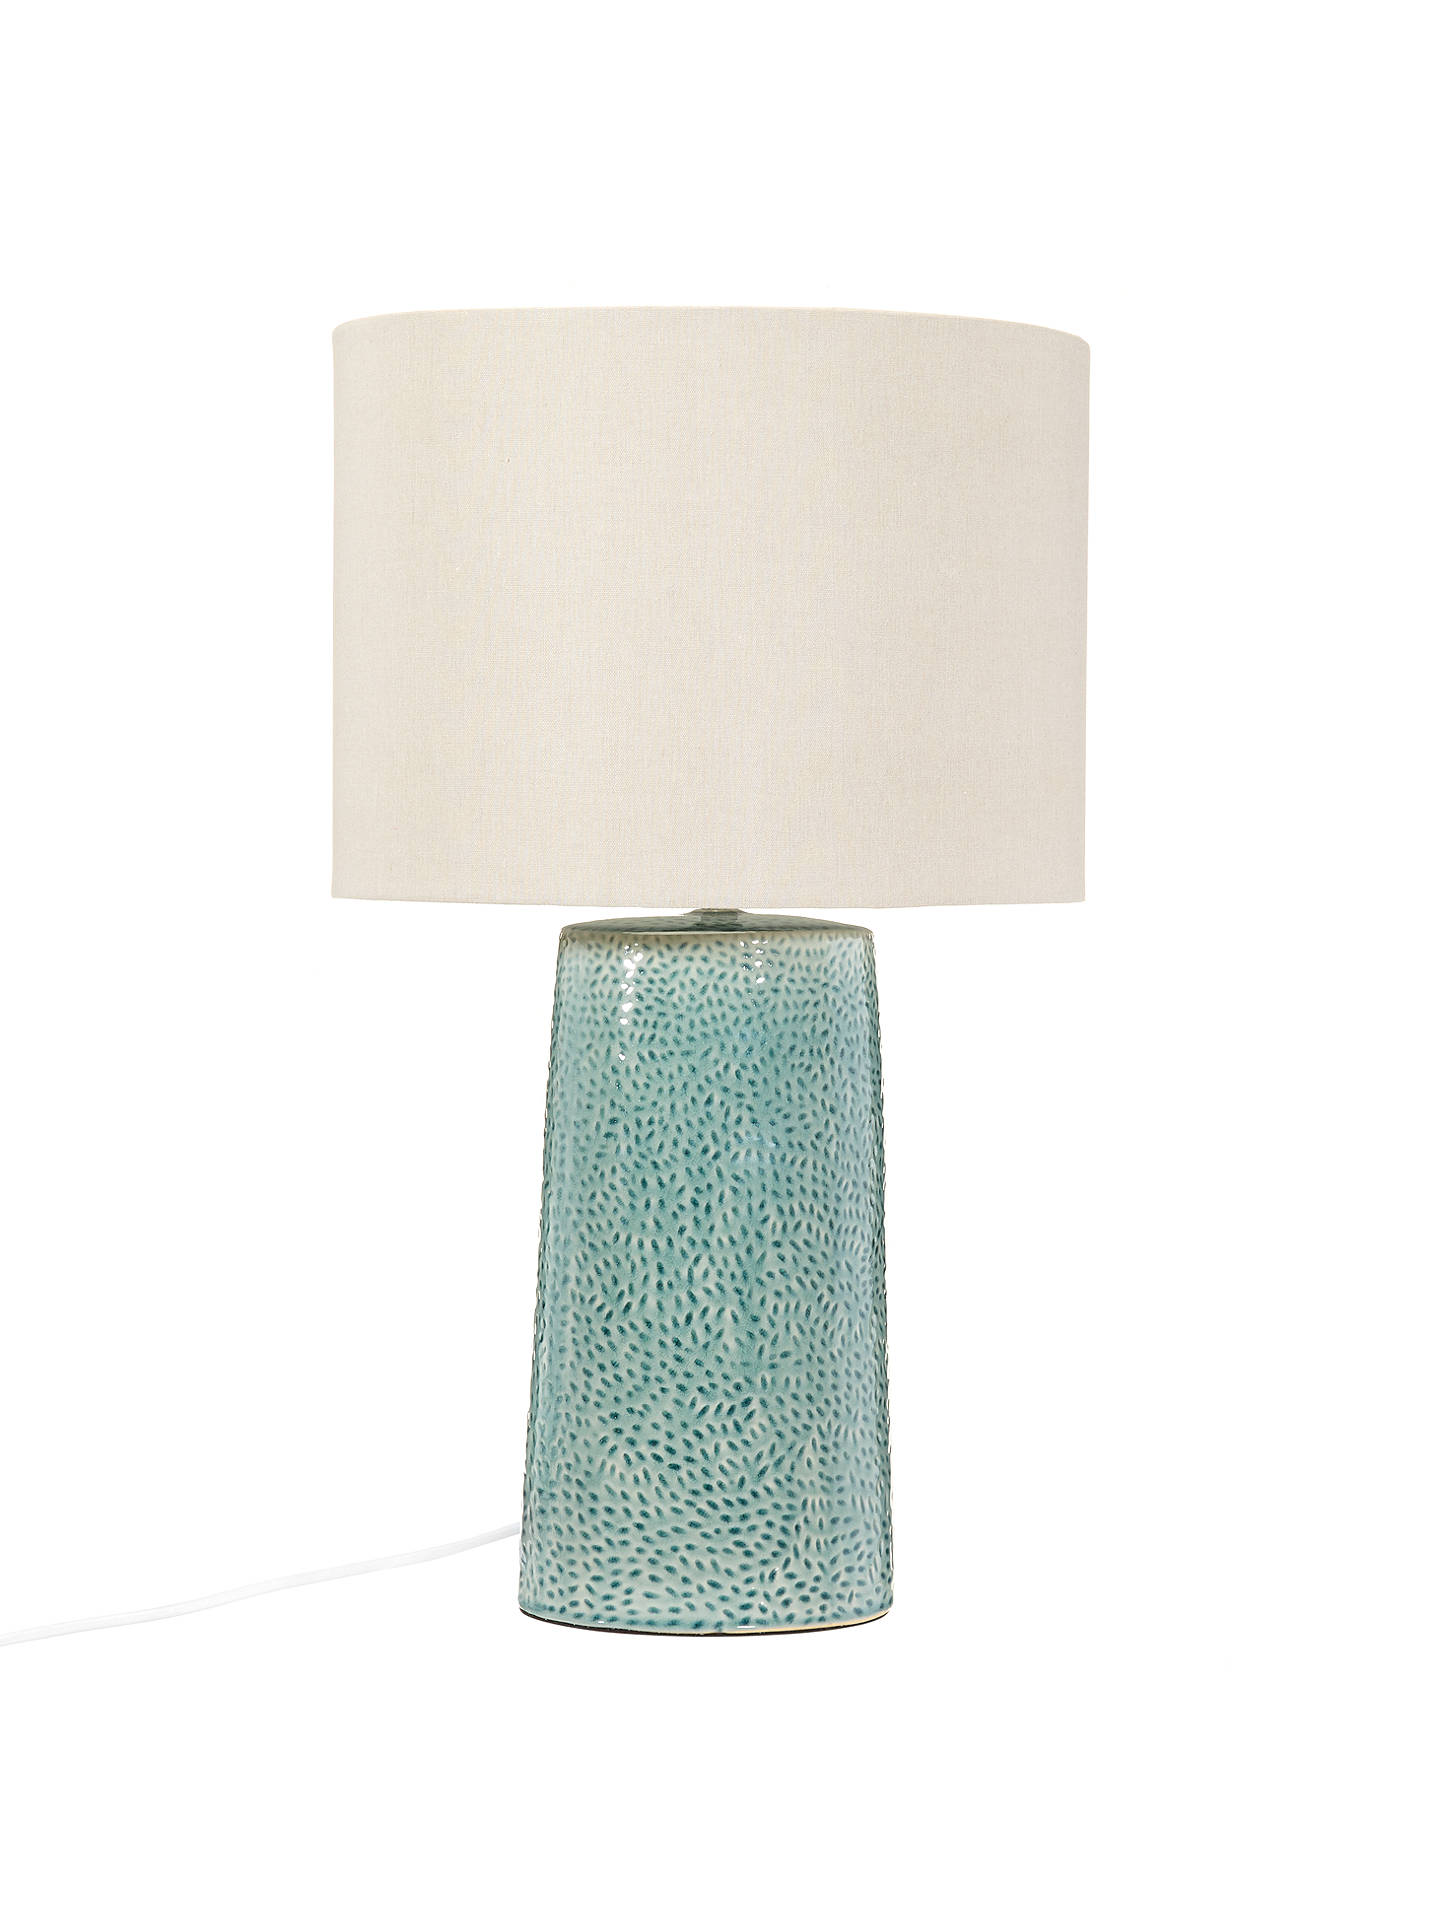 BuyJohn Lewis & Partners Capelin Tall Dimpled Ceramic Table Lamp, Aqua Online at johnlewis.com